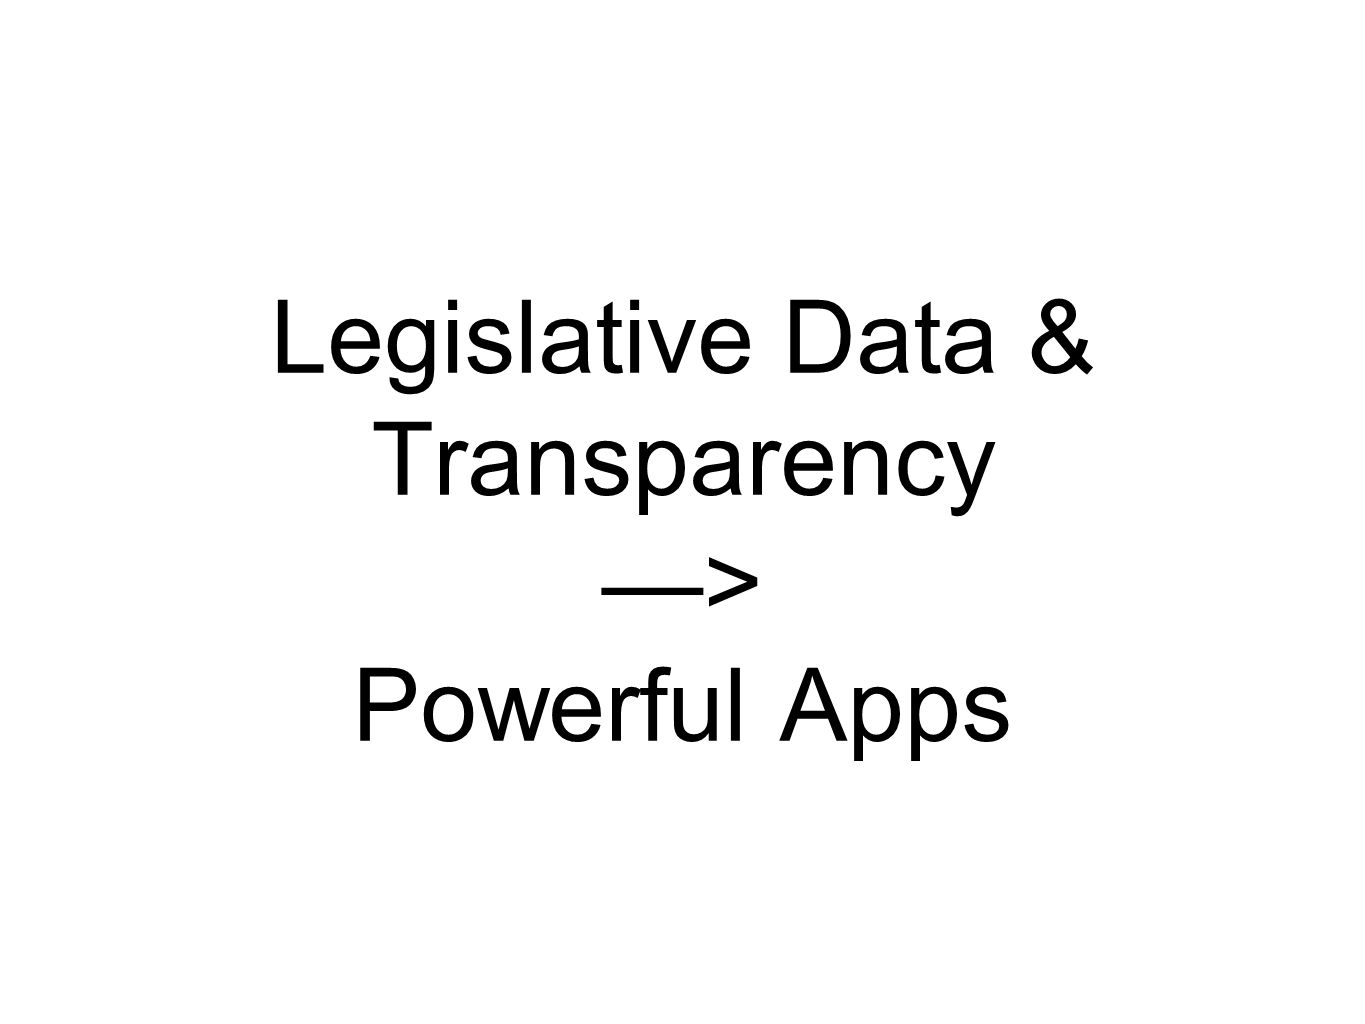 Legislative Data & Transparency —> Powerful Apps